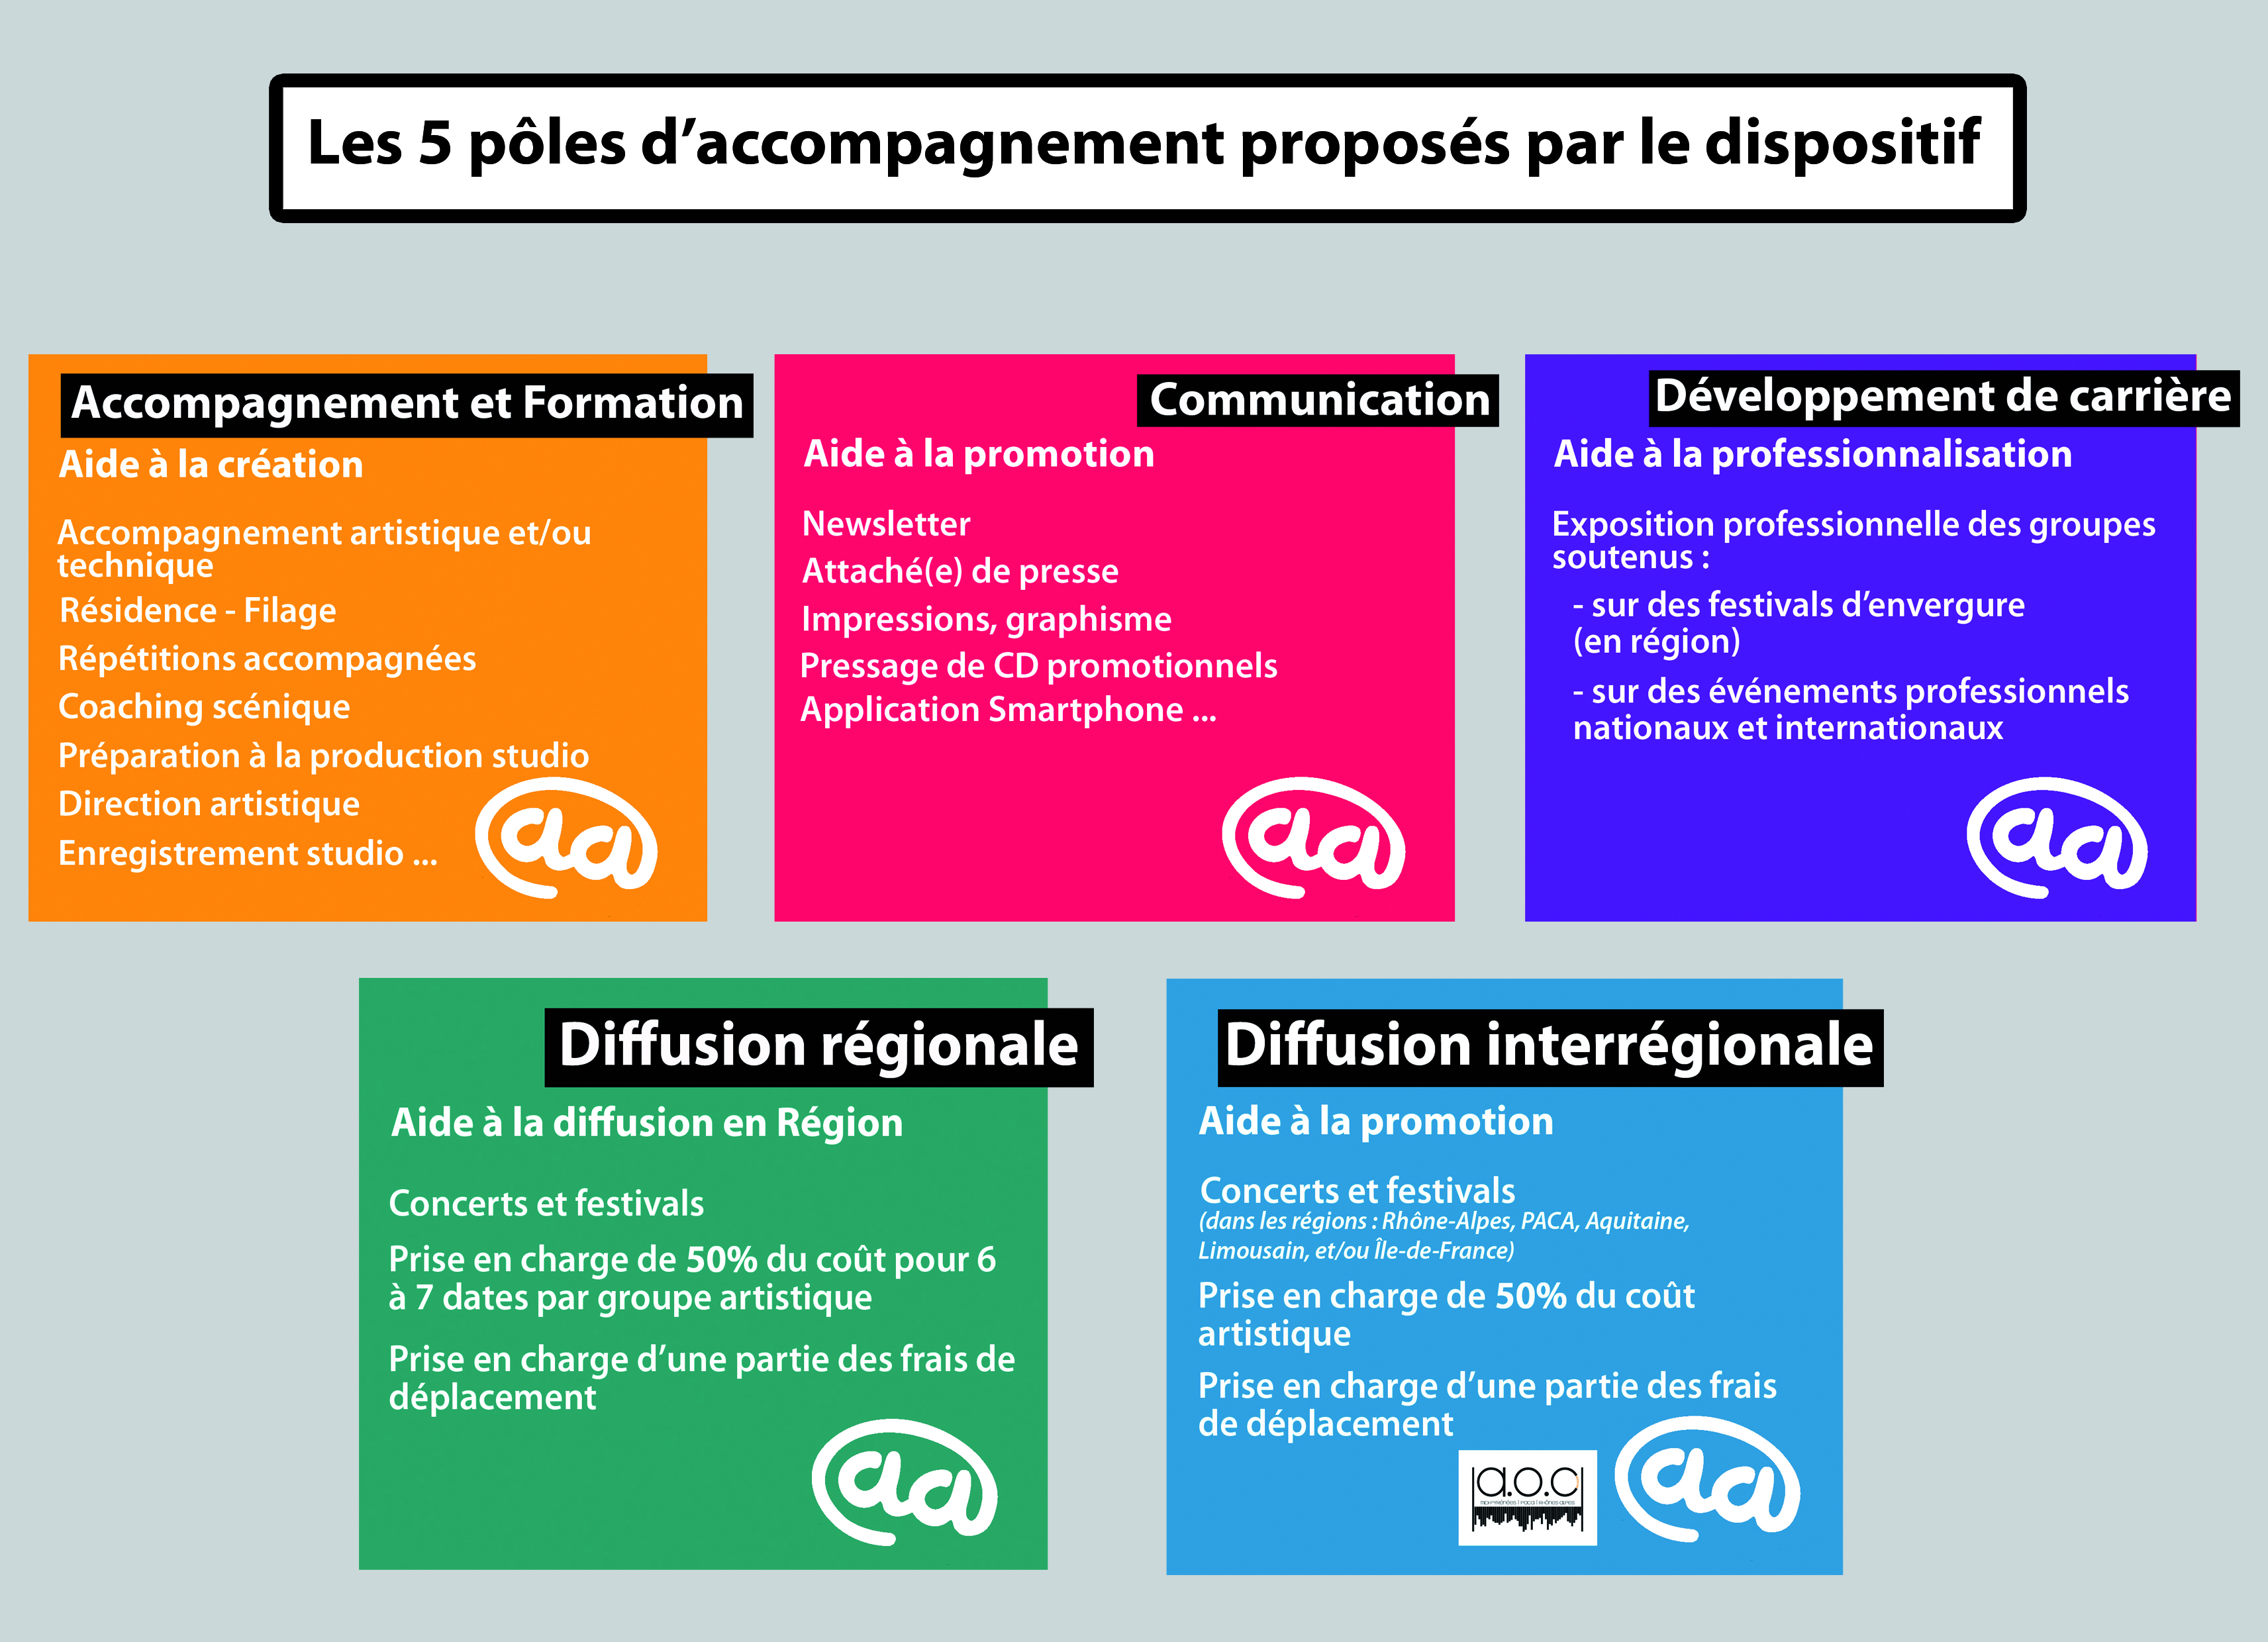 5polesaccompagnement